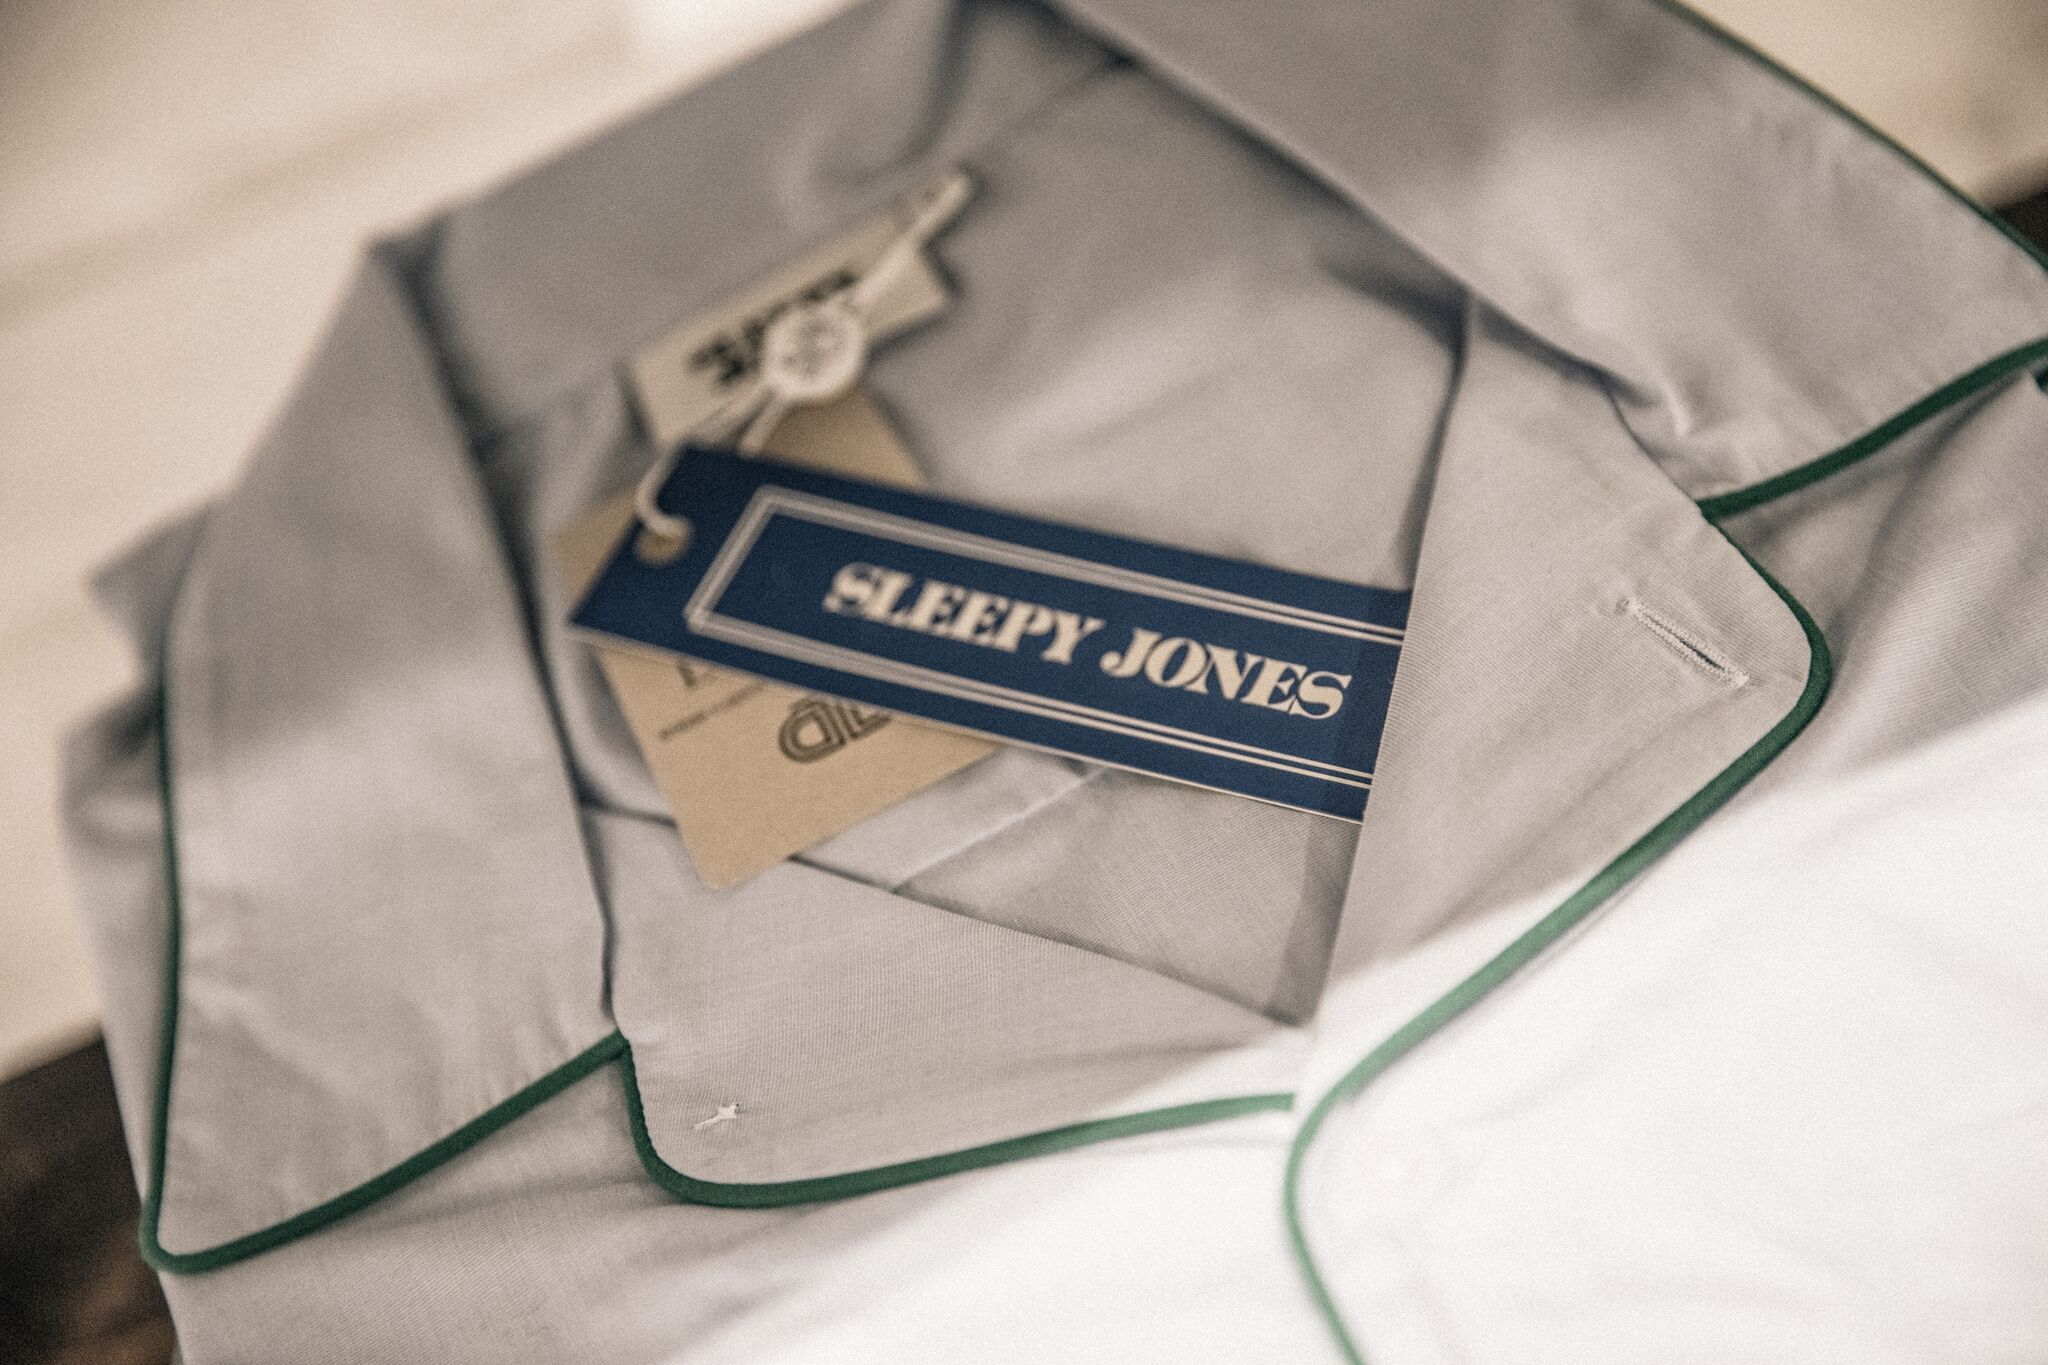 Sleepy Jones Pajamas from Trunk and Drawer // (Image: Trunk and Drawer)<p></p>